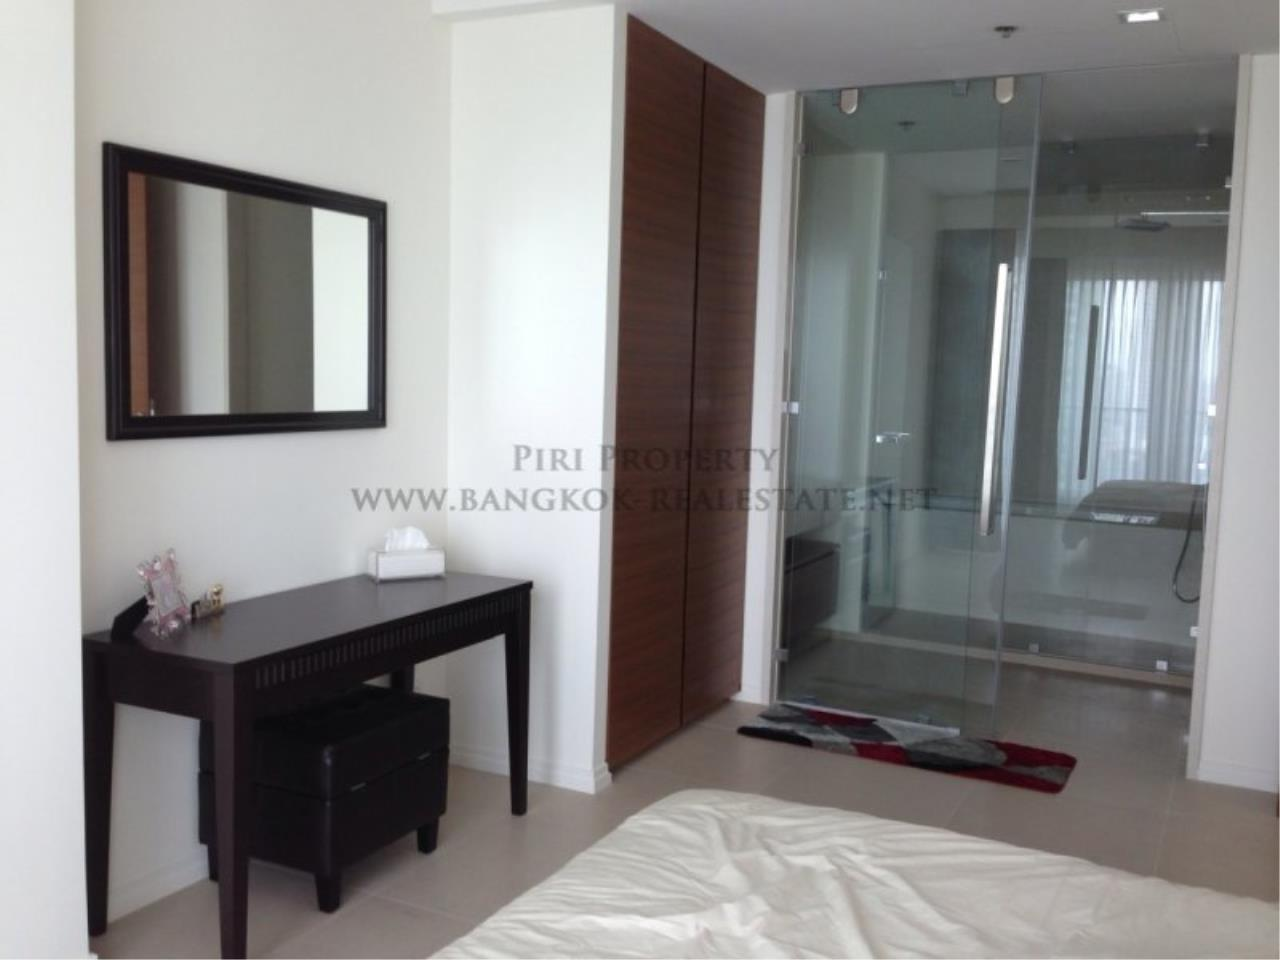 Piri Property Agency's The River Condo - 1 Bedroom - 17th Floor - Fully furnished 3